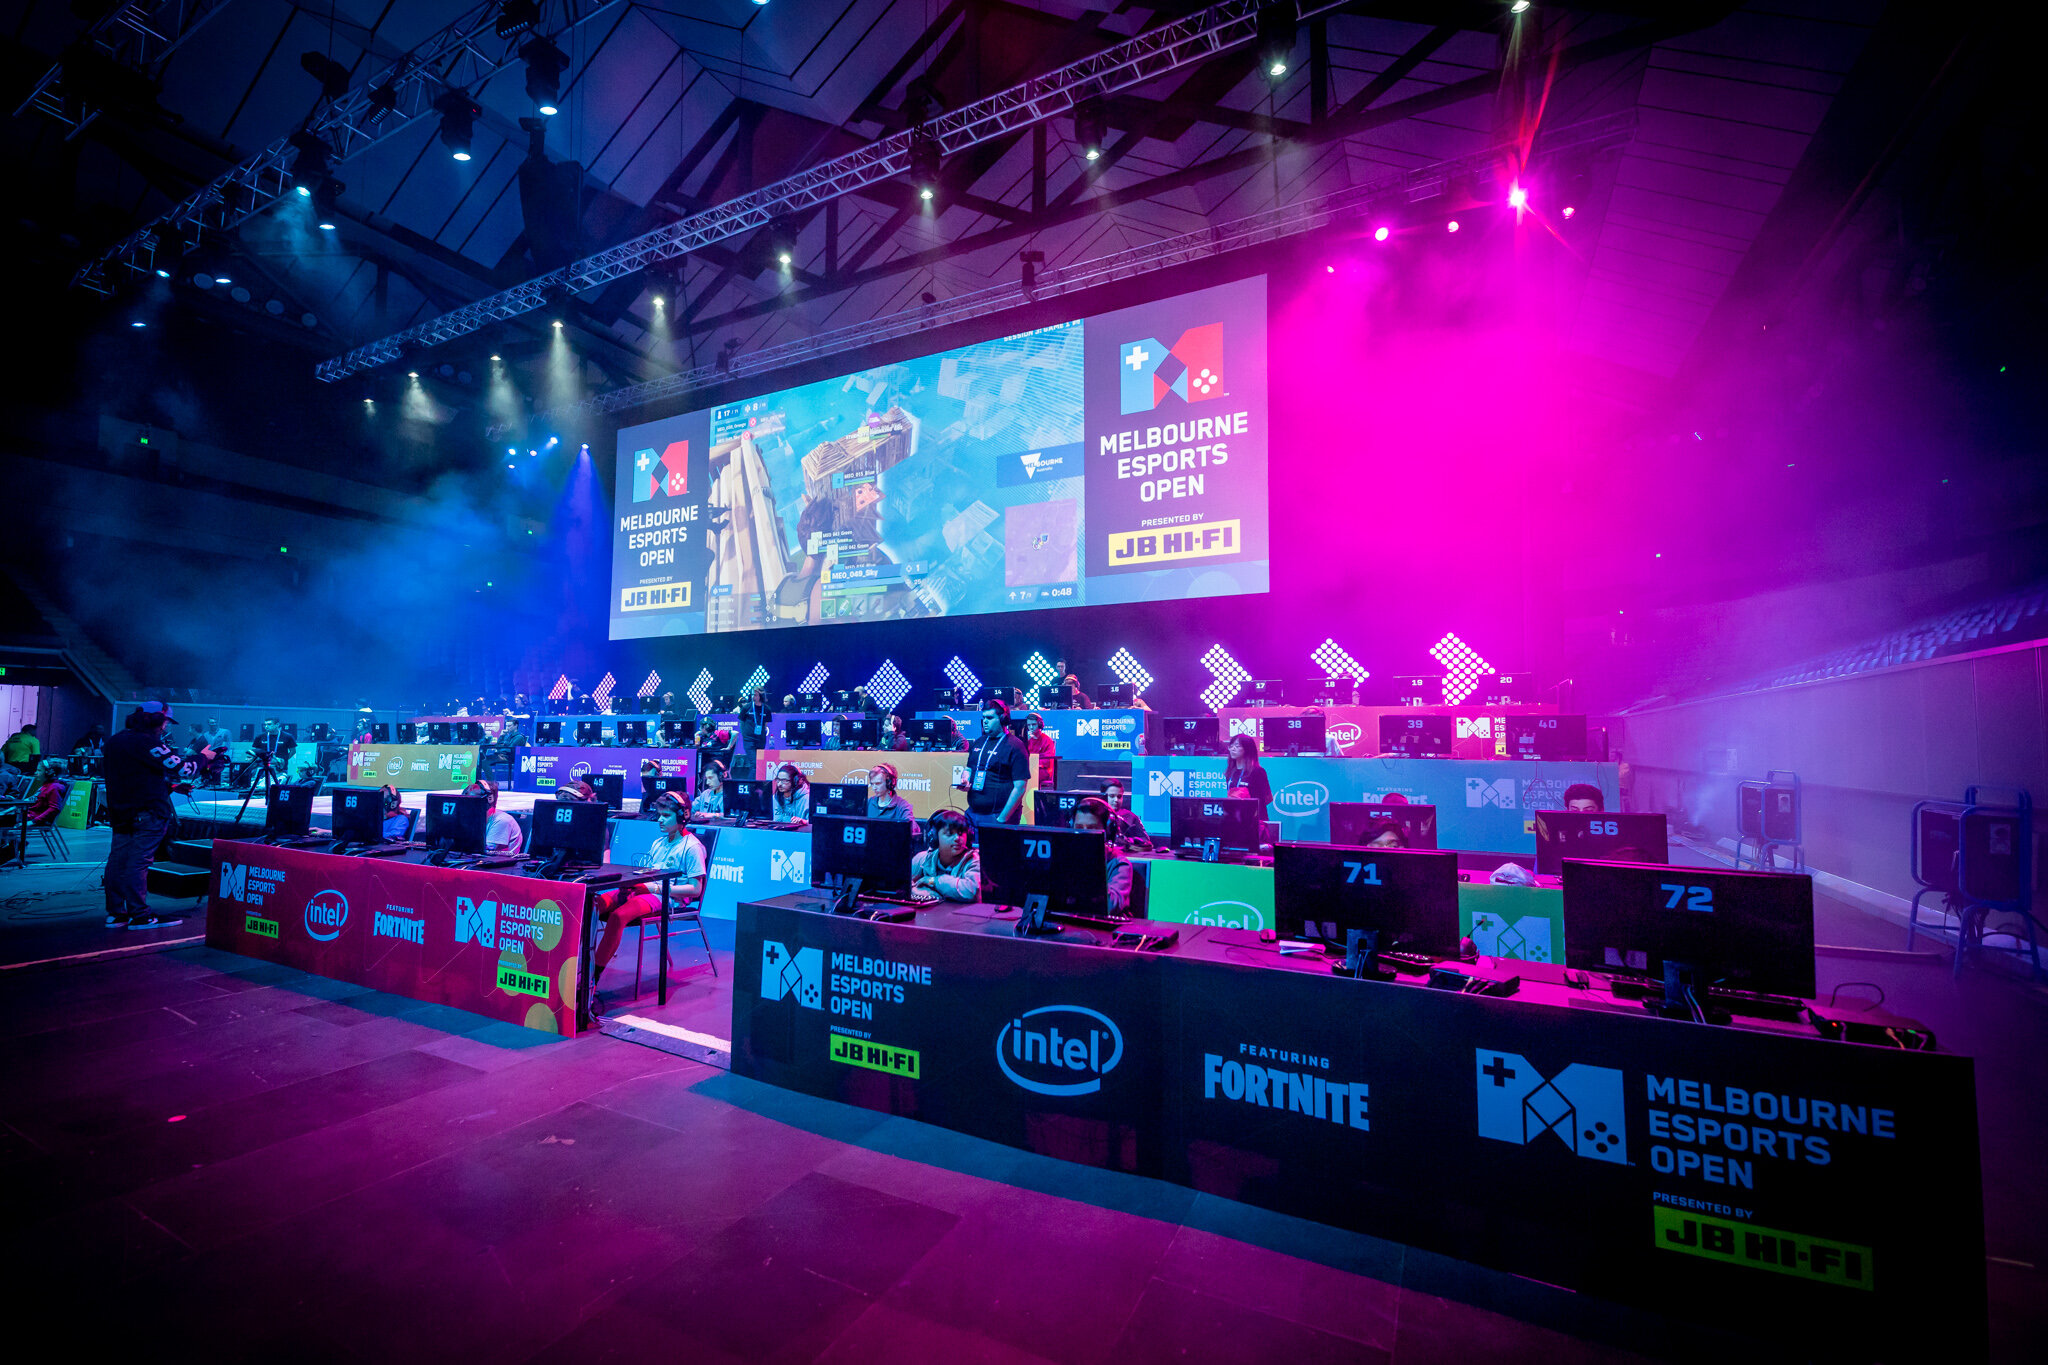 Fortnite at Margaret Court Arena for the Melbourne Esports Open 2019